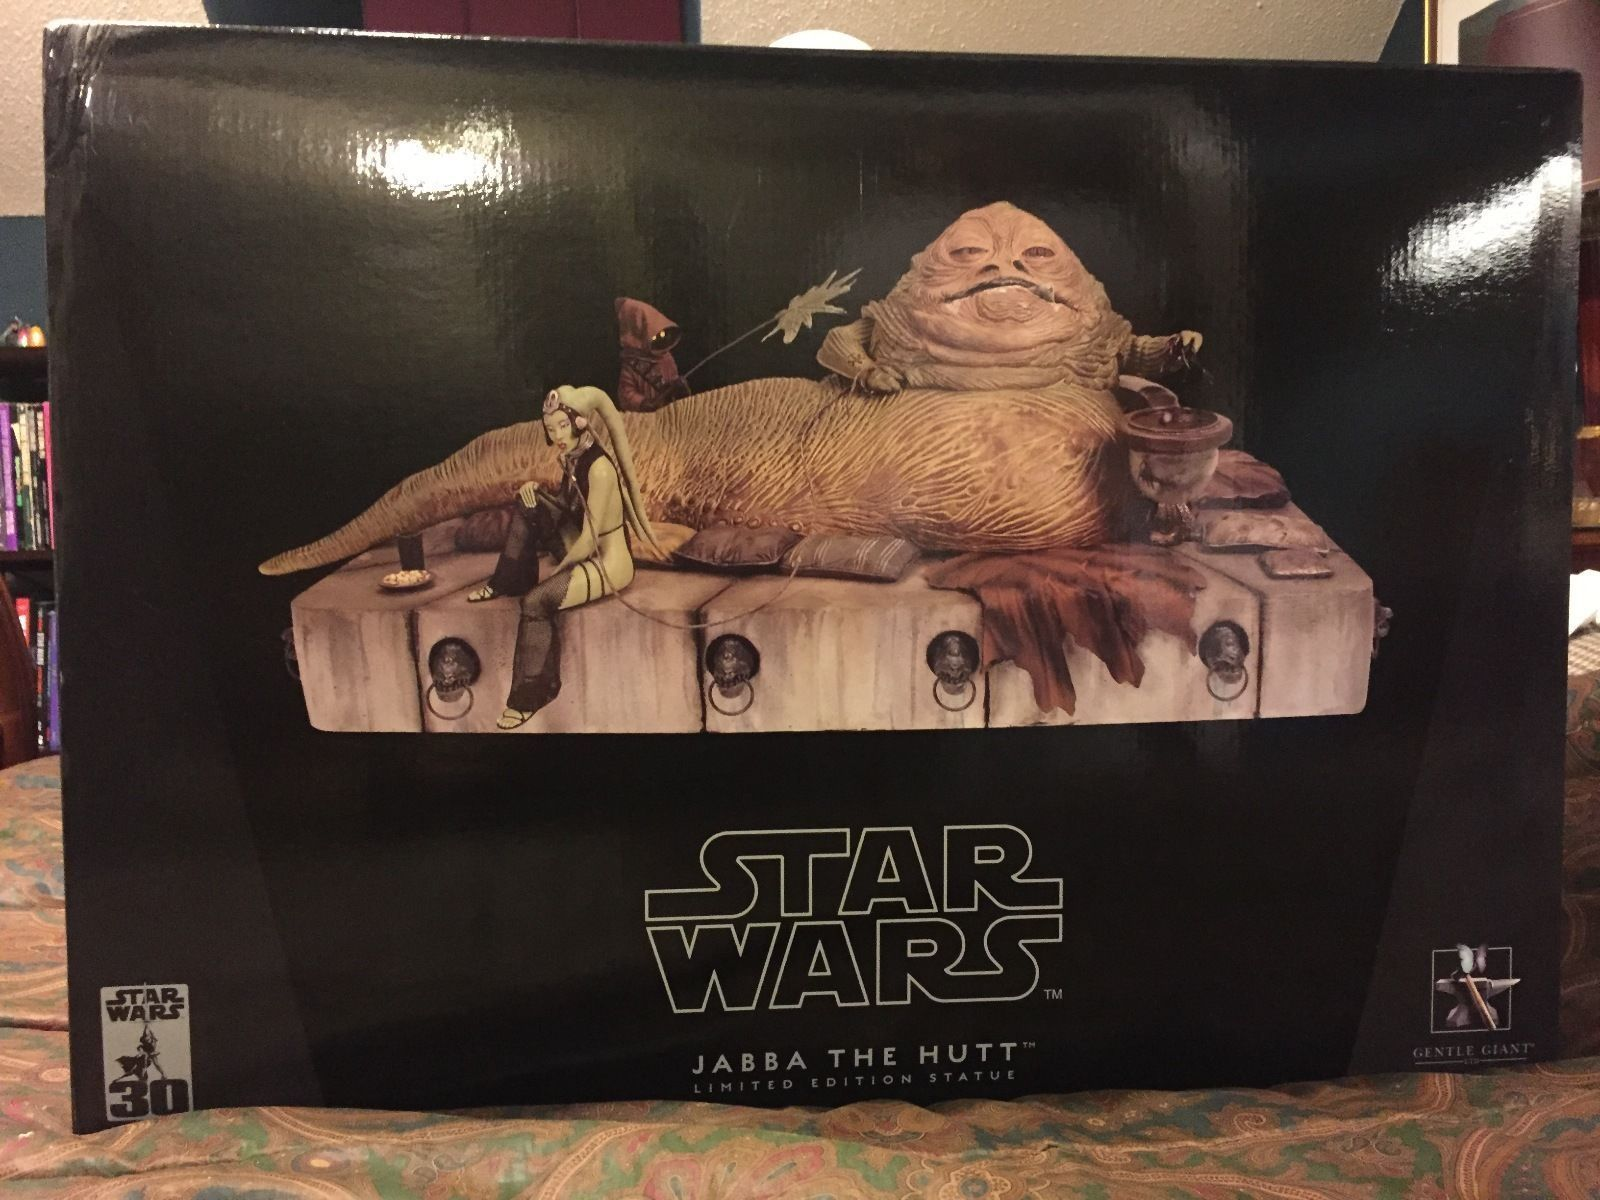 Star Wars Jabba the Hutt Statue Gentle Giant New HTF